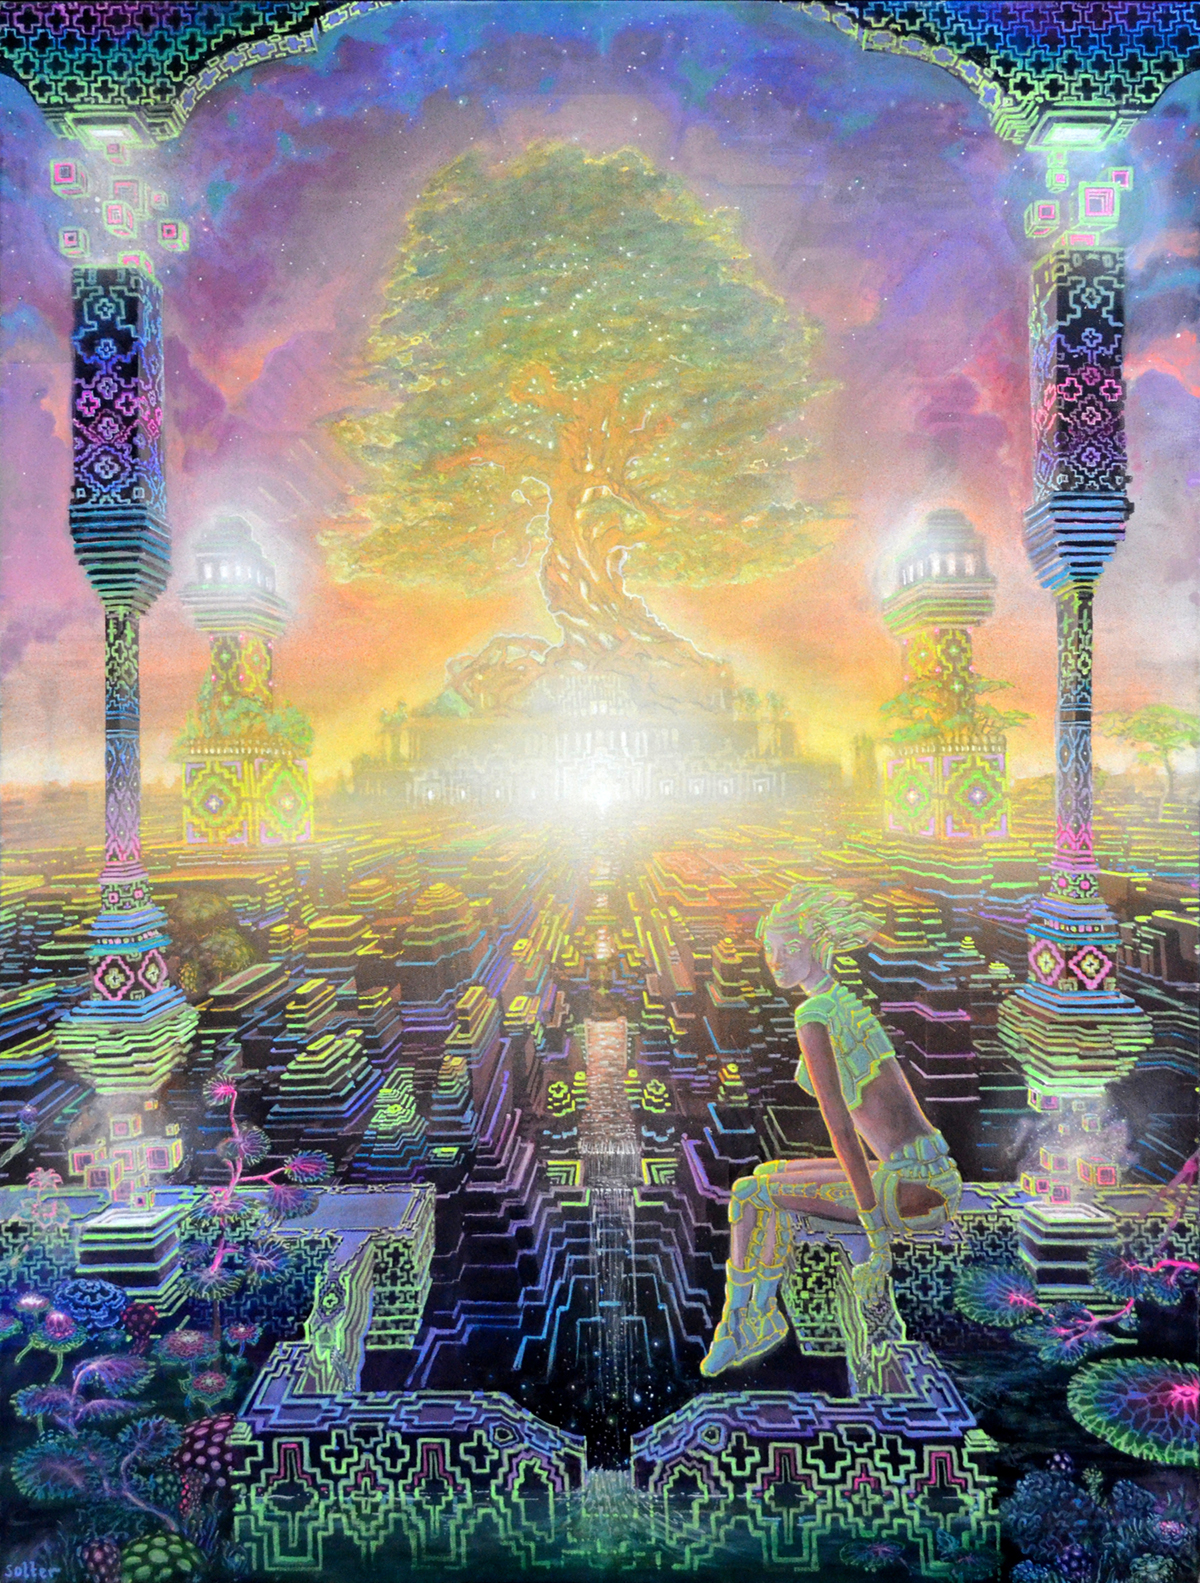 The Visionary Art of Jonathan Solter